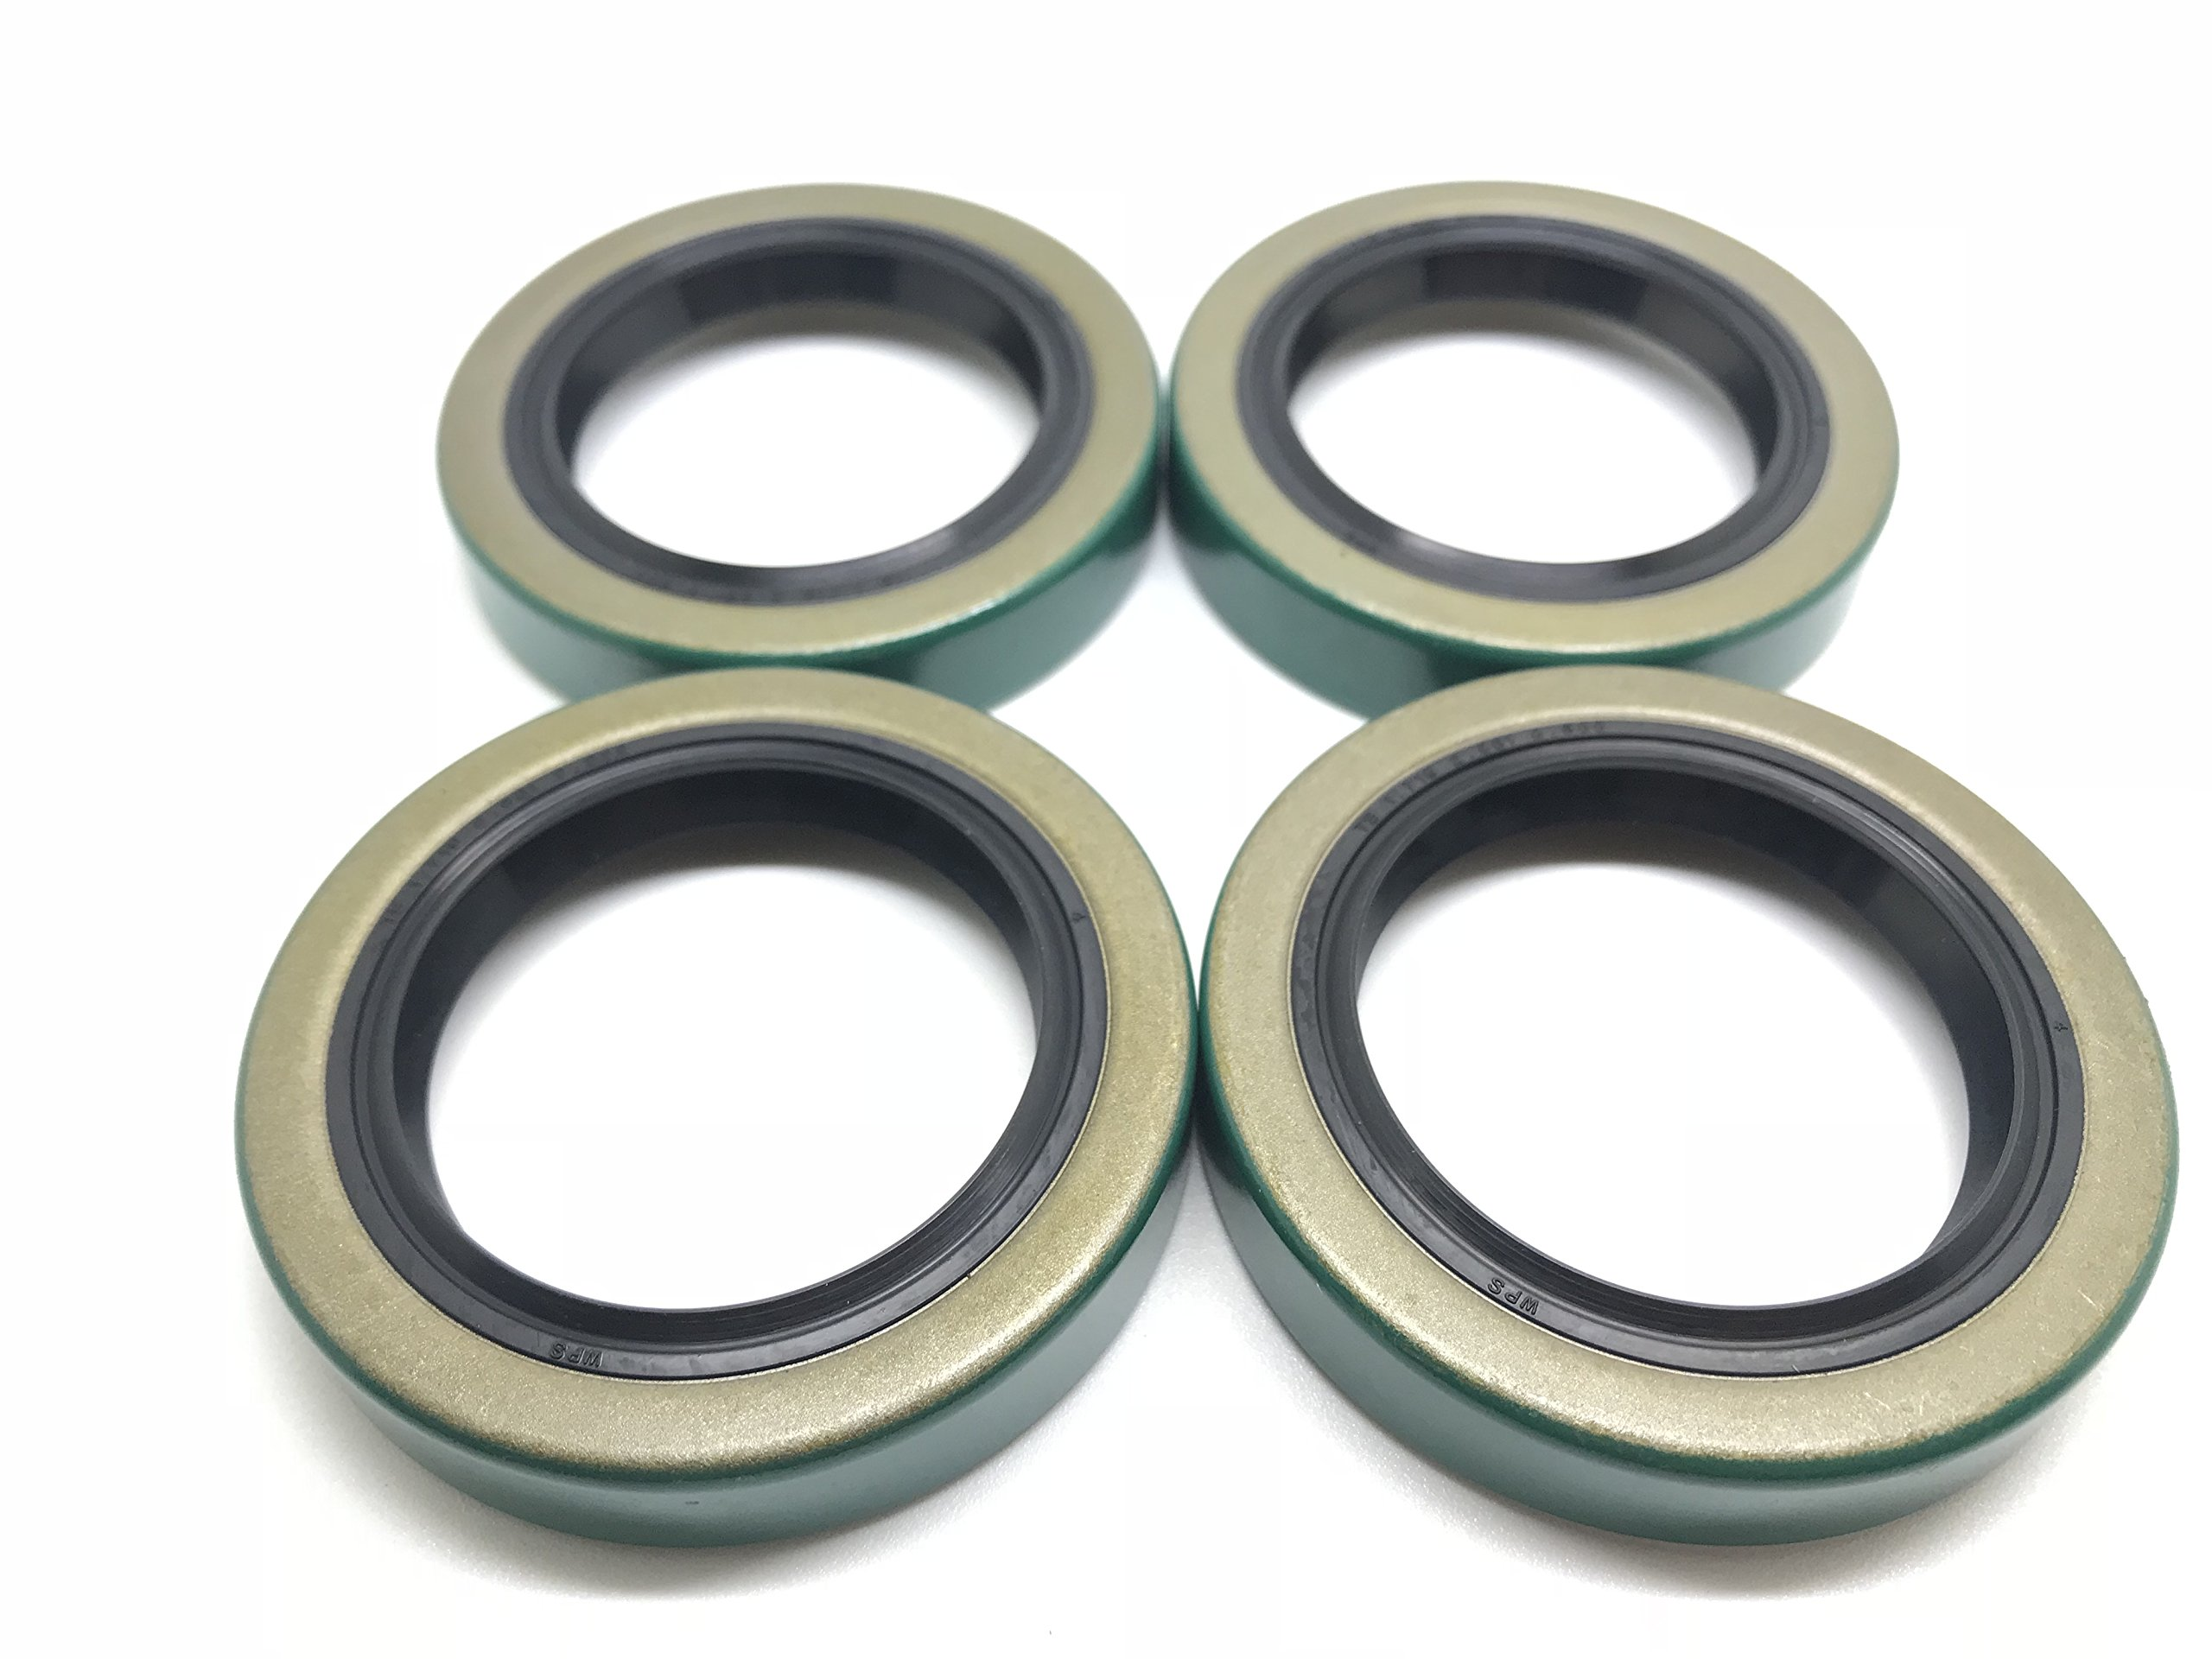 WPS (Pack of 4) (TM) Trailer Hub Wheel Grease Seal 10-19 171255TB 1.719'' X 2.565'' For 3500# E-Z Lube Axles